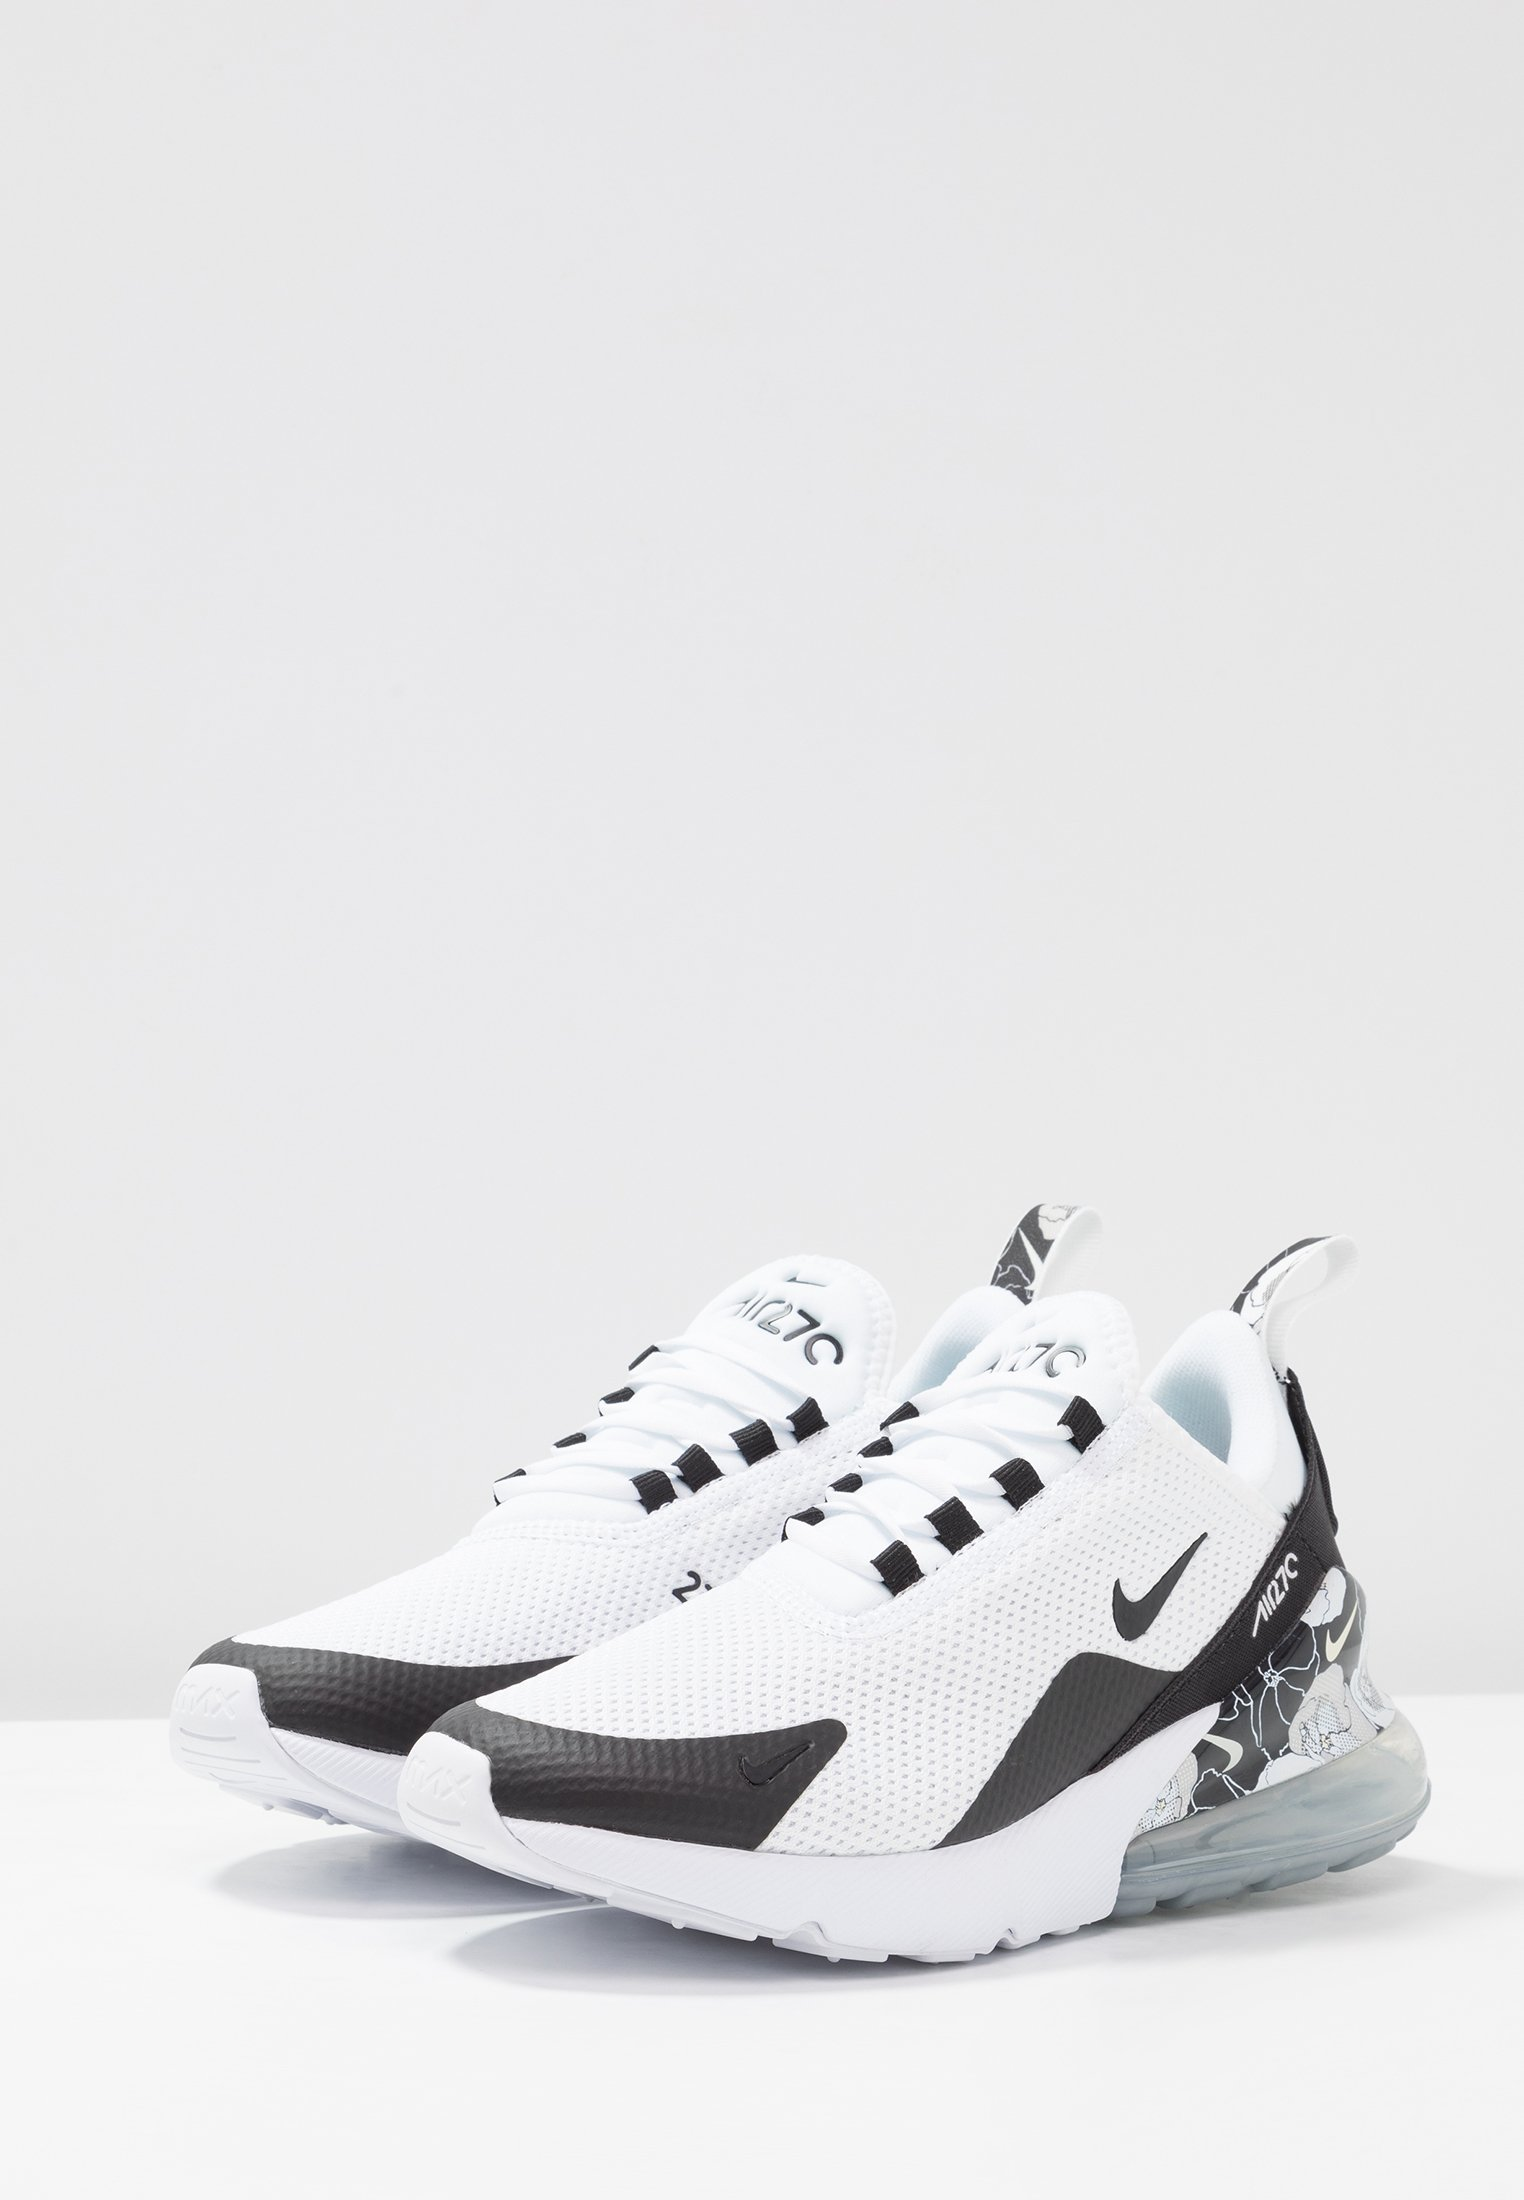 AIR MAX 270 Sneaker low whiteblackmetallic silver